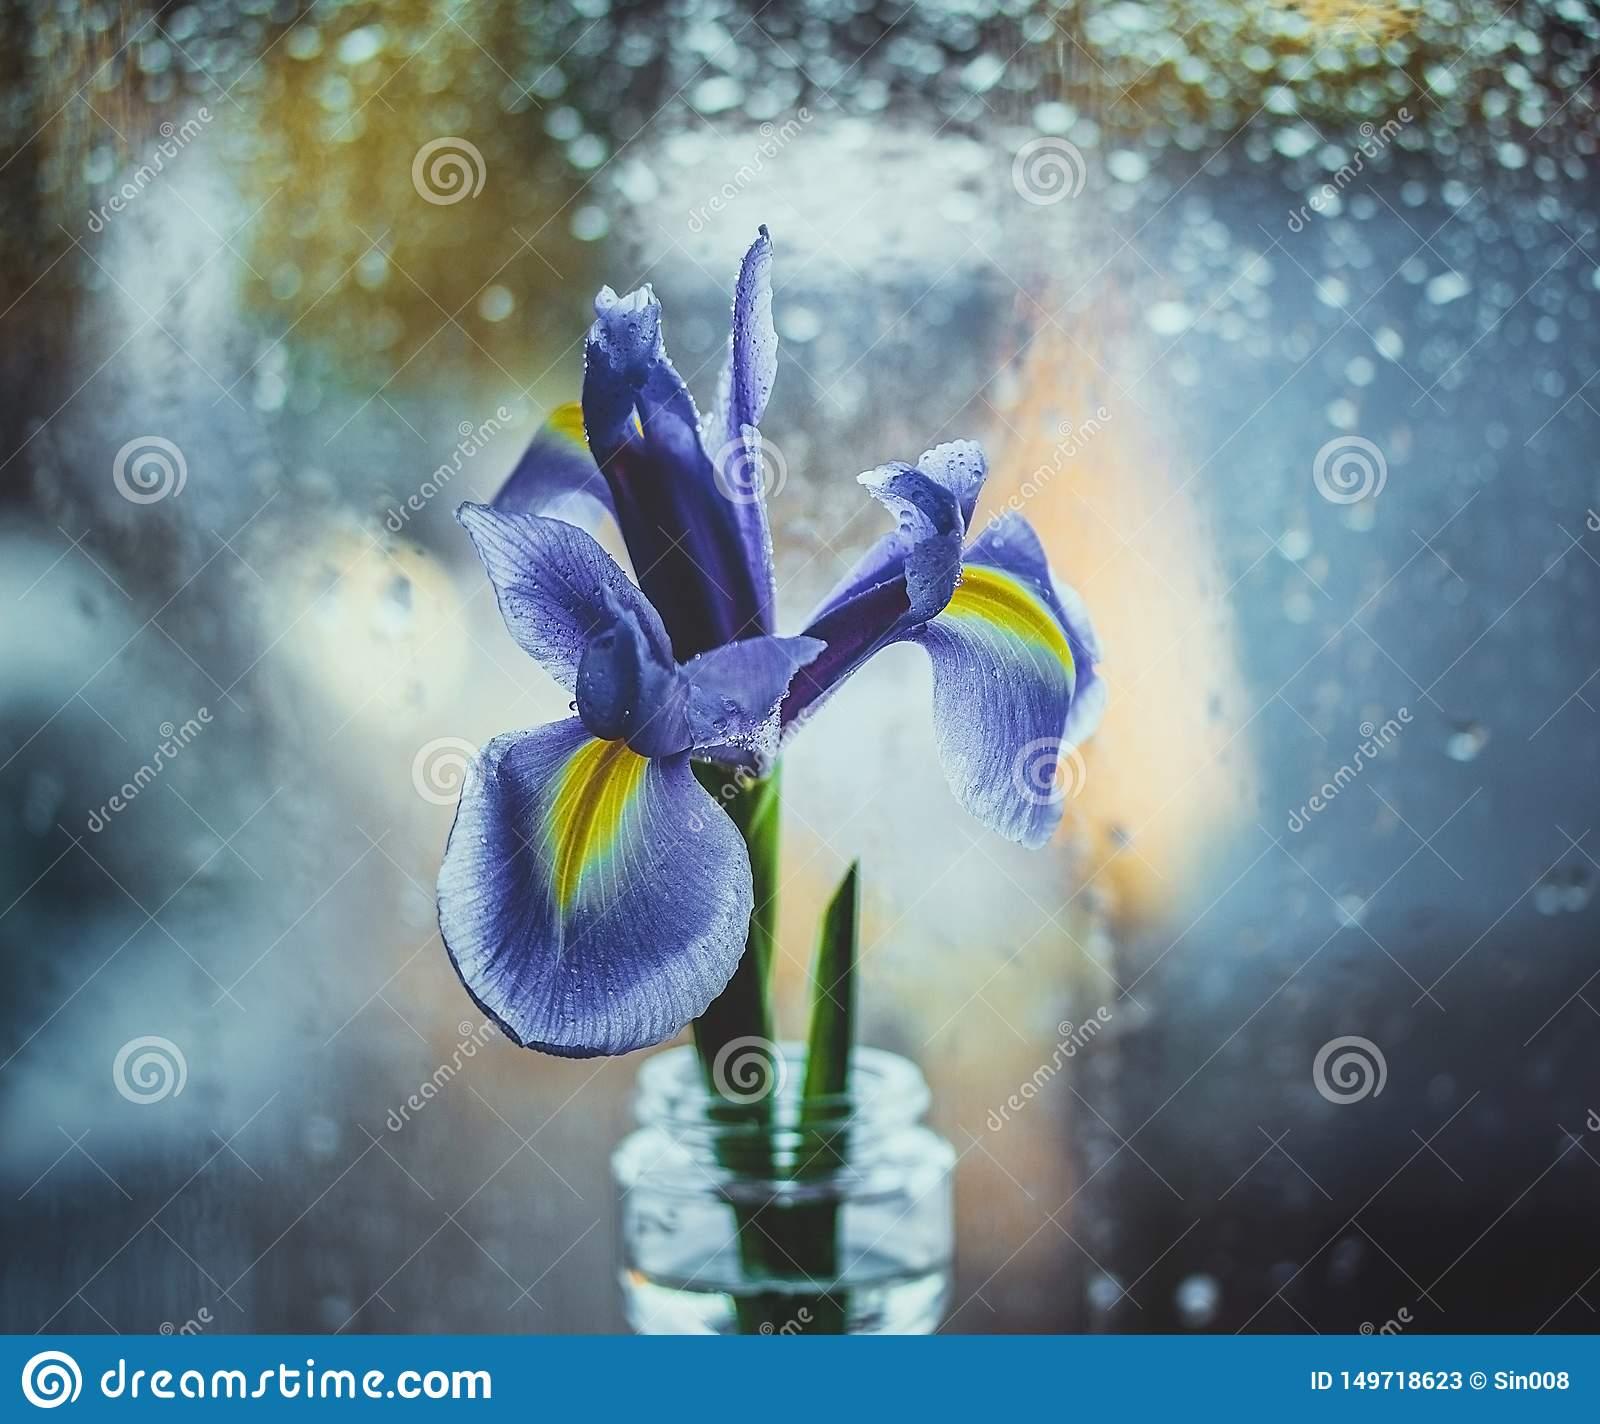 Dutch purple iris in a vase by the window. Bright iris on a blue blurred background with water drops. Bokeh macro, close-up.